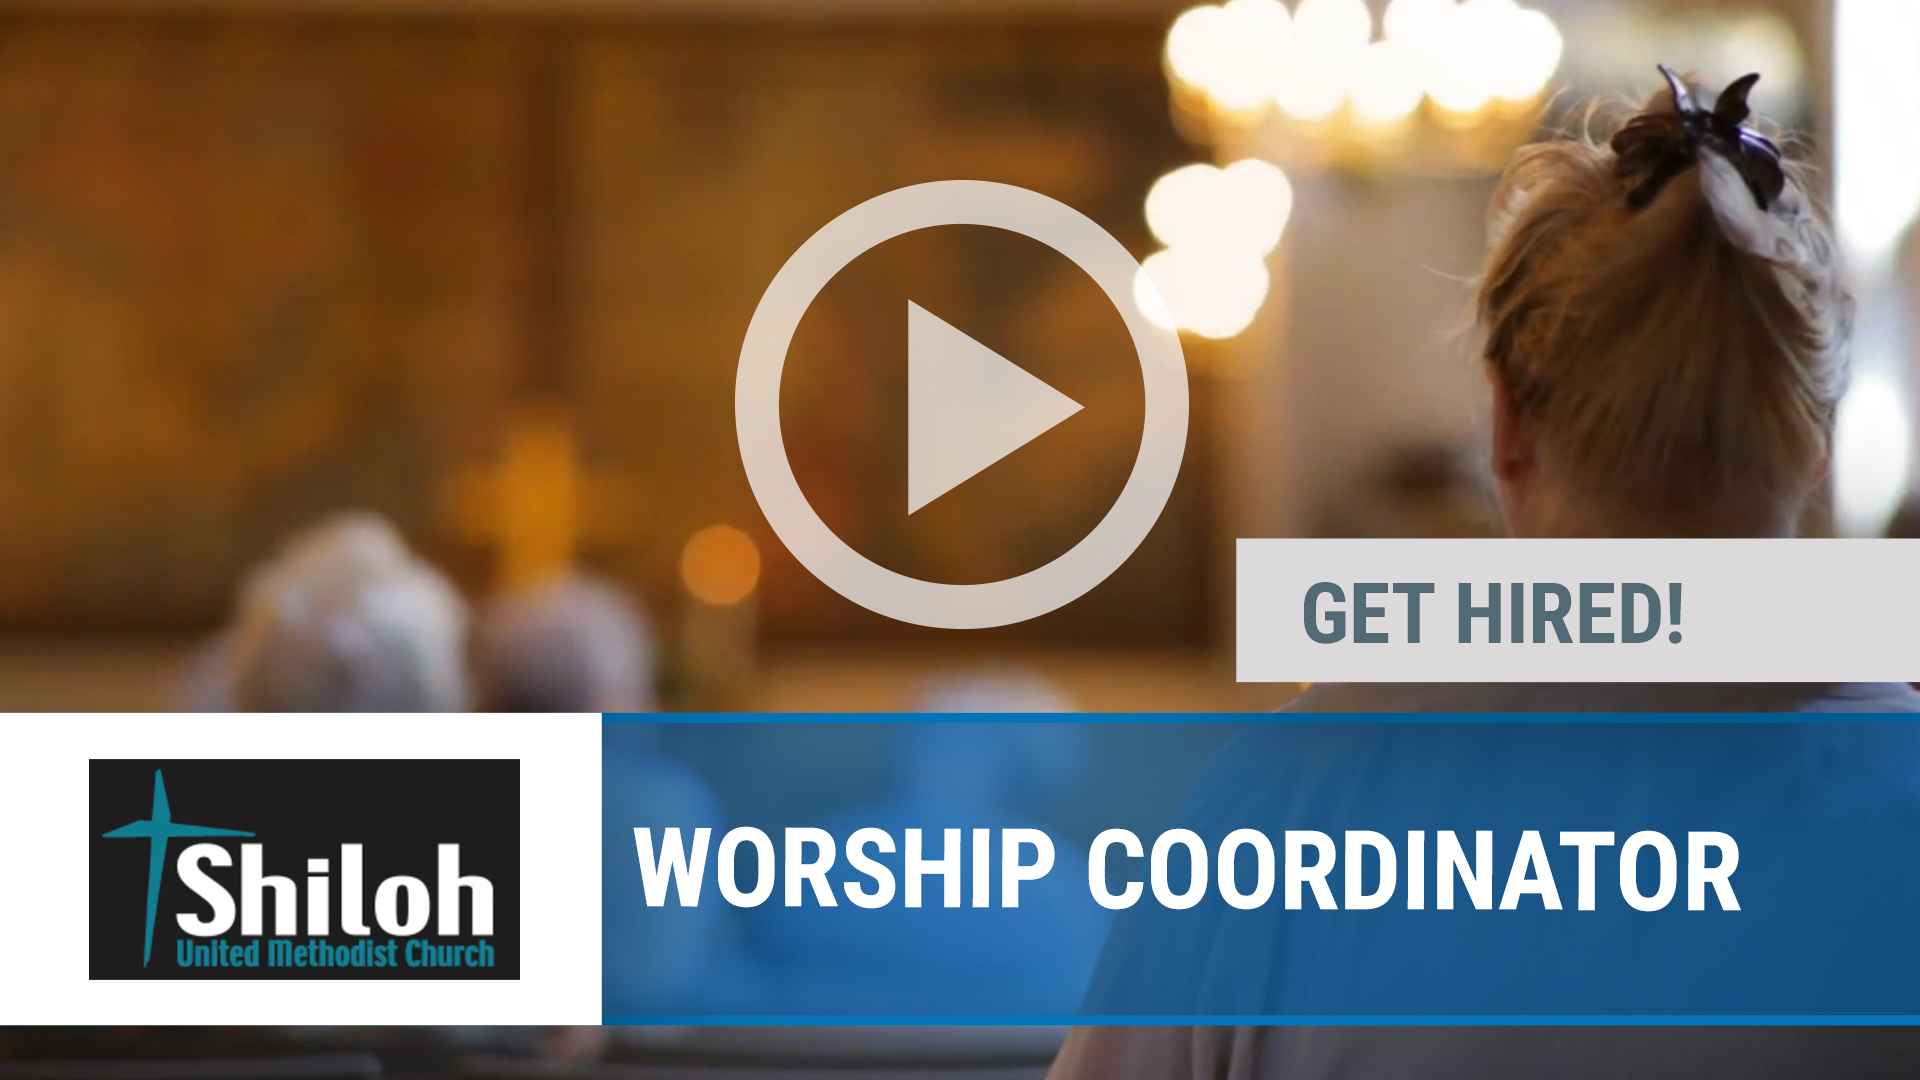 Watch our careers video for available job opening WORSHIP COORDINATOR in SHILOH, IL